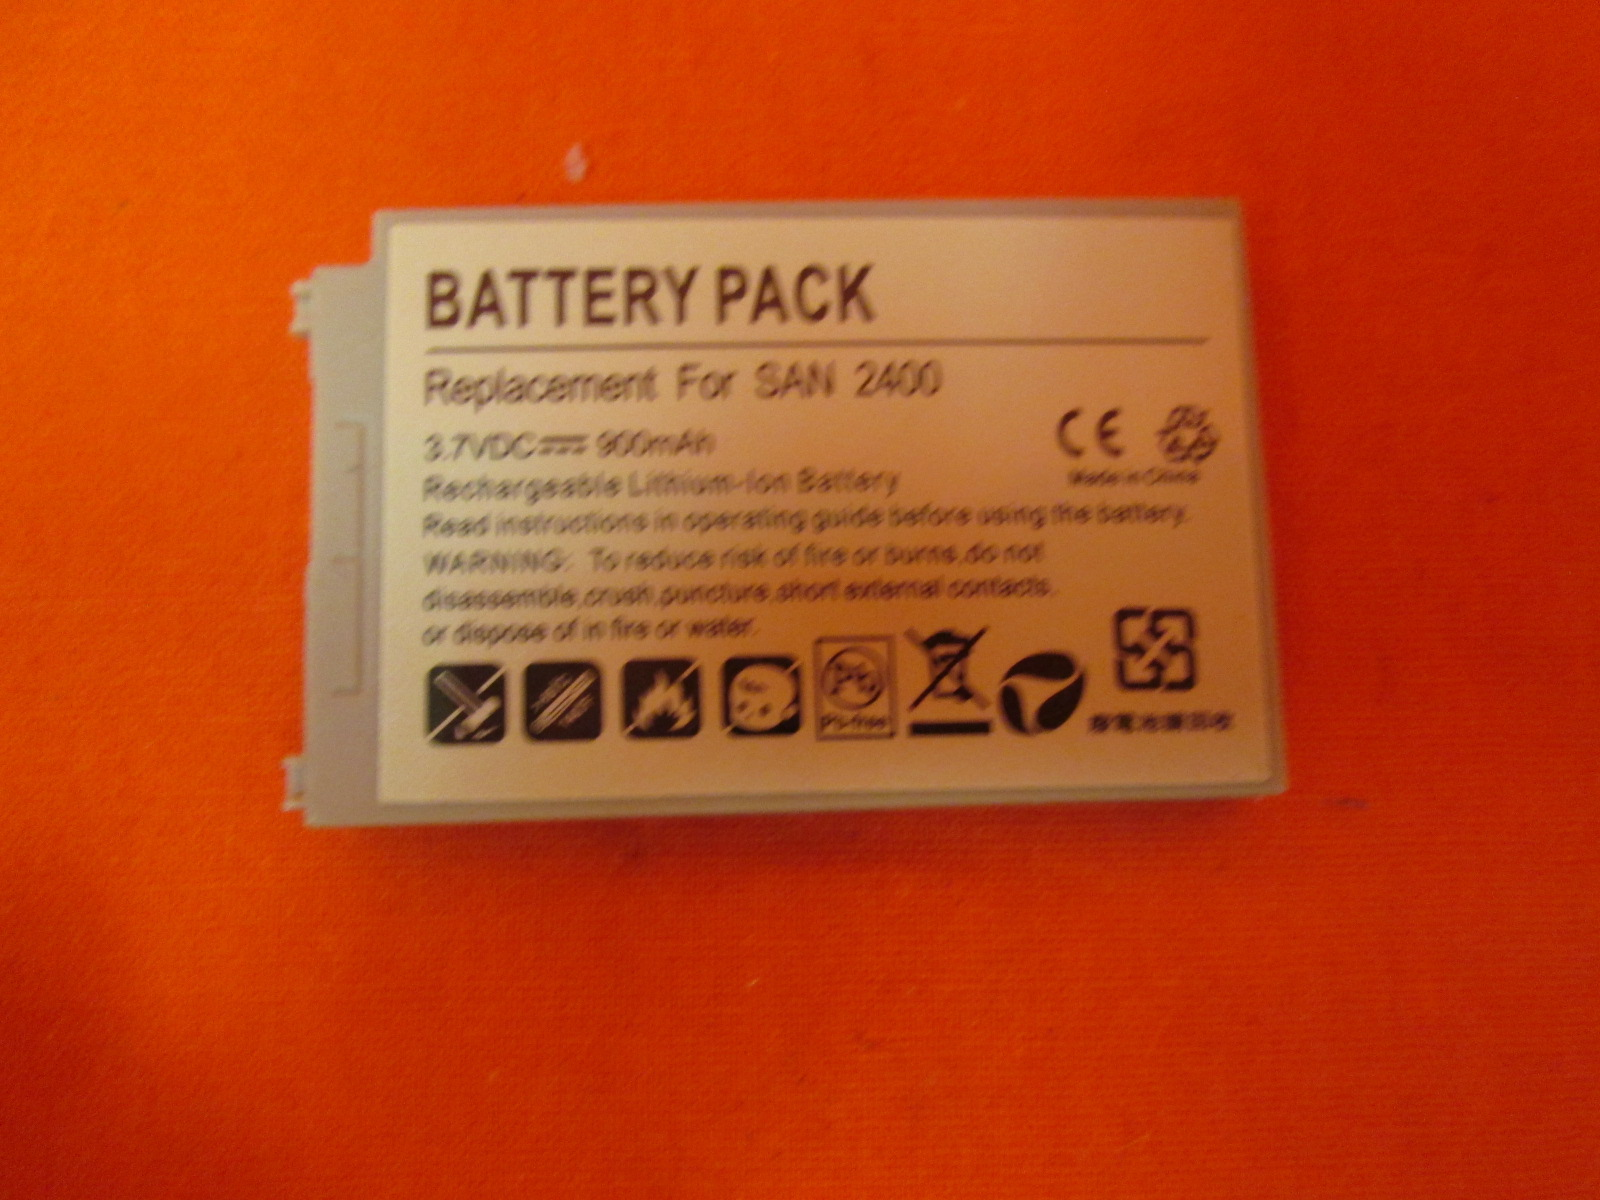 Battery Pack For San 2400 Rechargeable Li-Ion